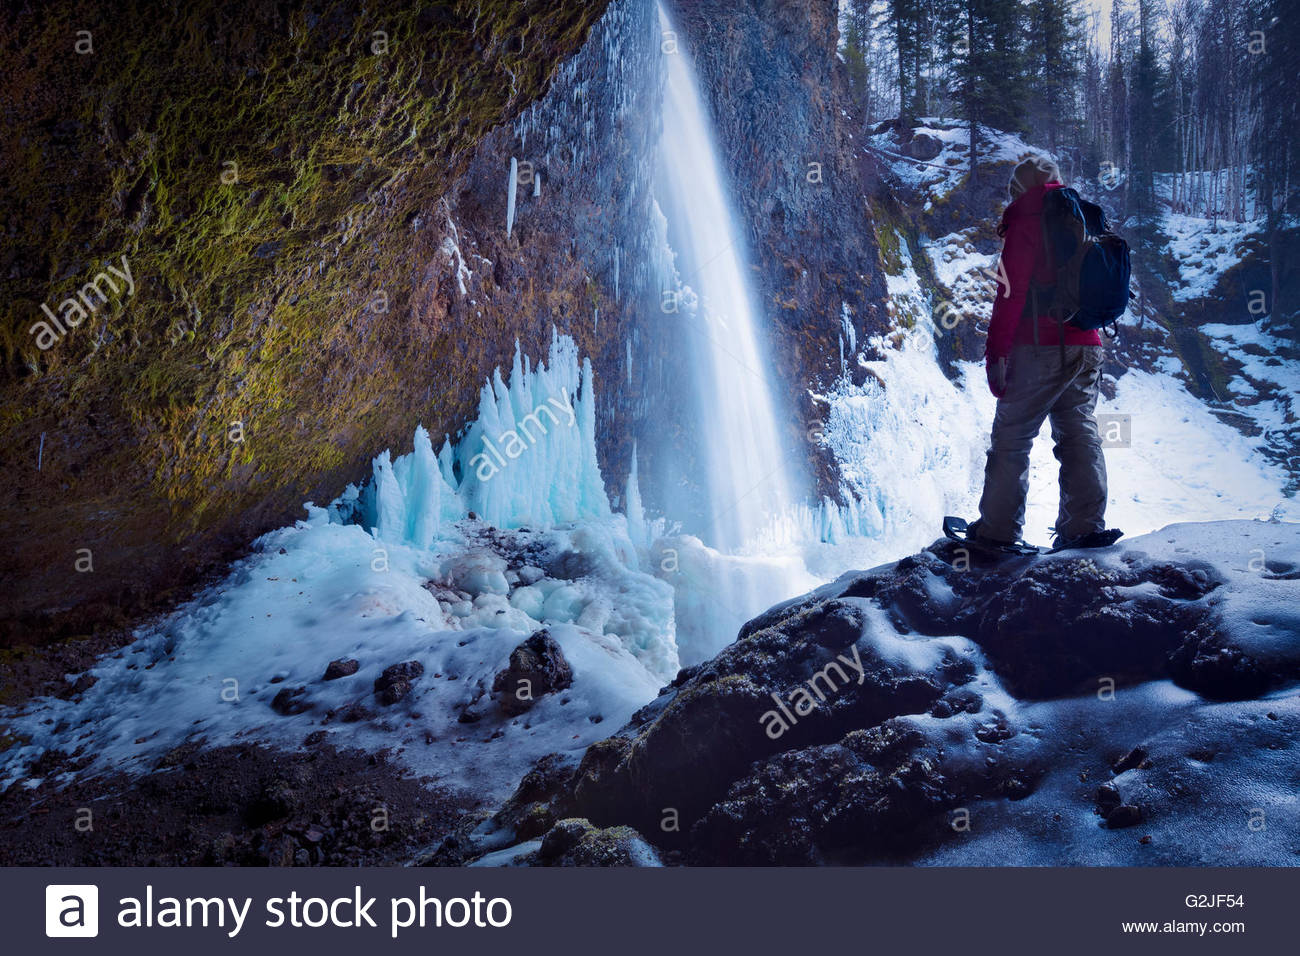 Snowshoer by watefall in winter, Wells gray provincial park, British Columbia, Canada - Stock Image